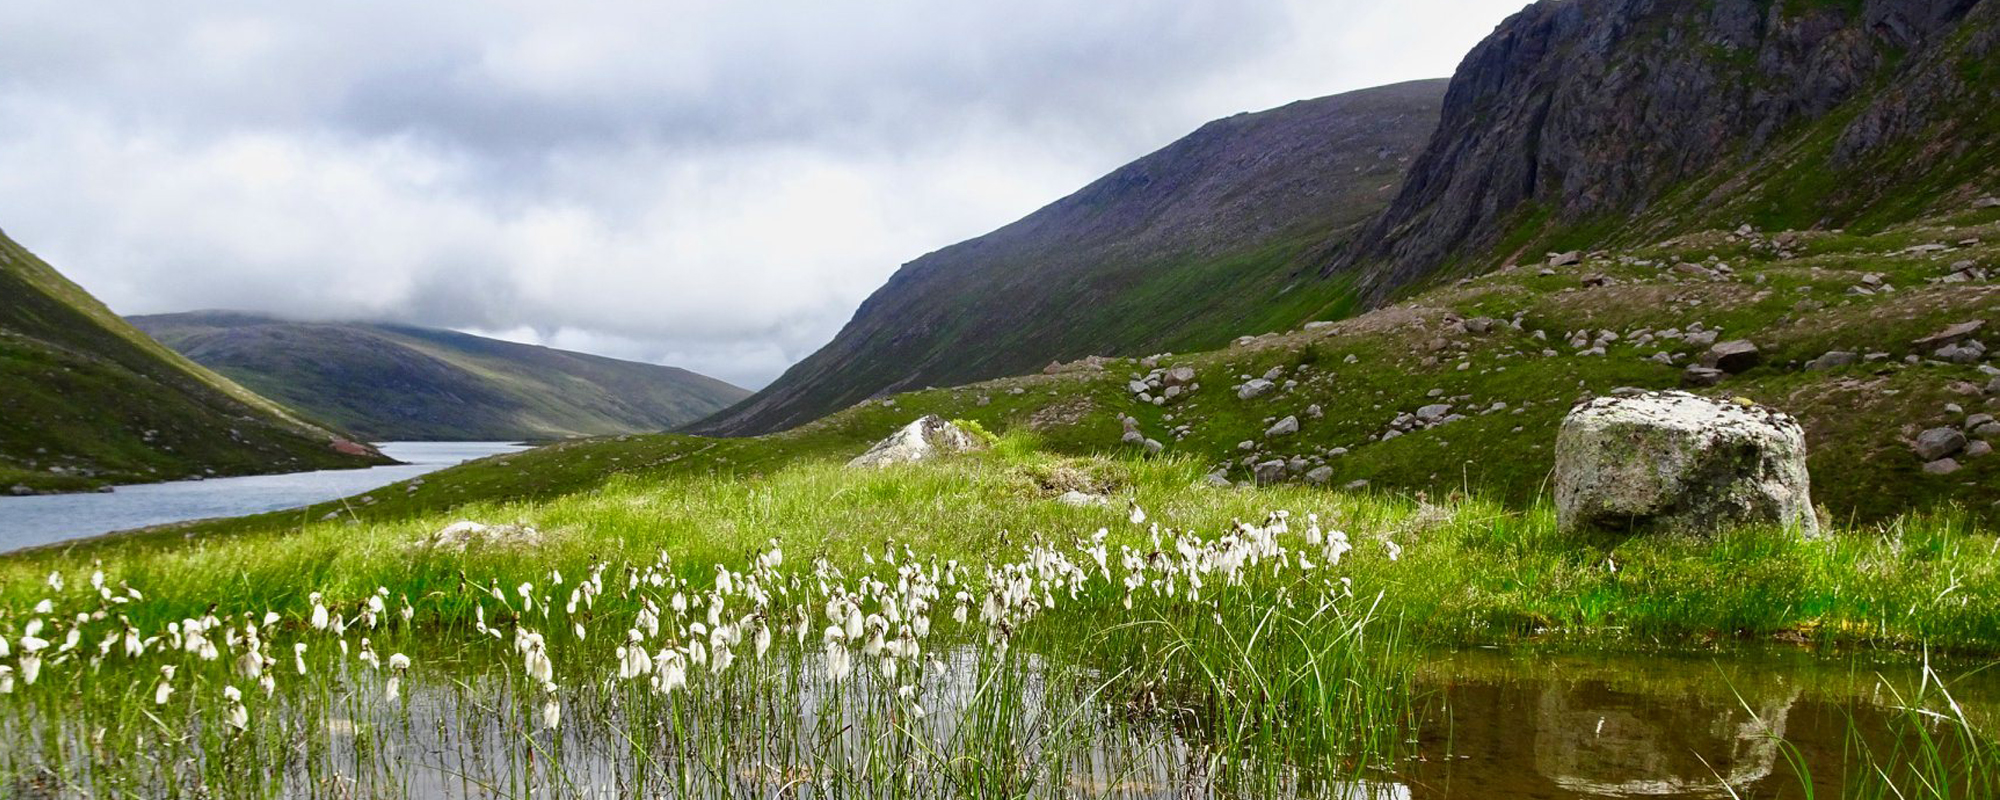 A dramatic glen in the Cairngorms with a loch and wetland with bog cotton in the foreground